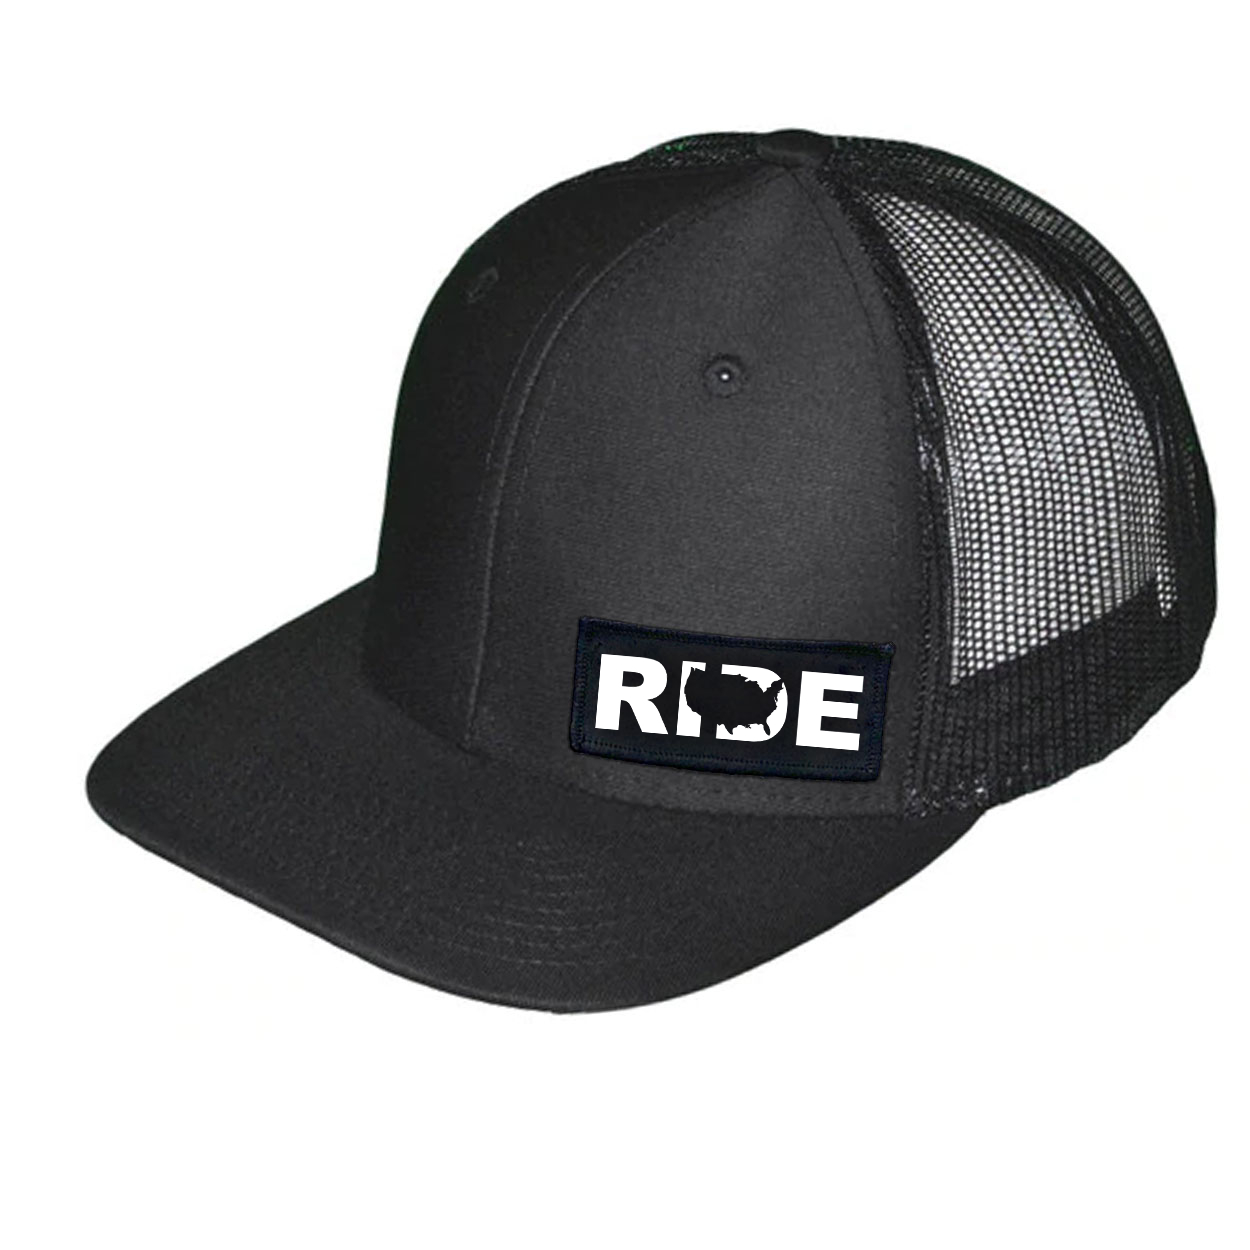 Ride United States Night Out Woven Patch Snapback Trucker Hat Black (White Logo)